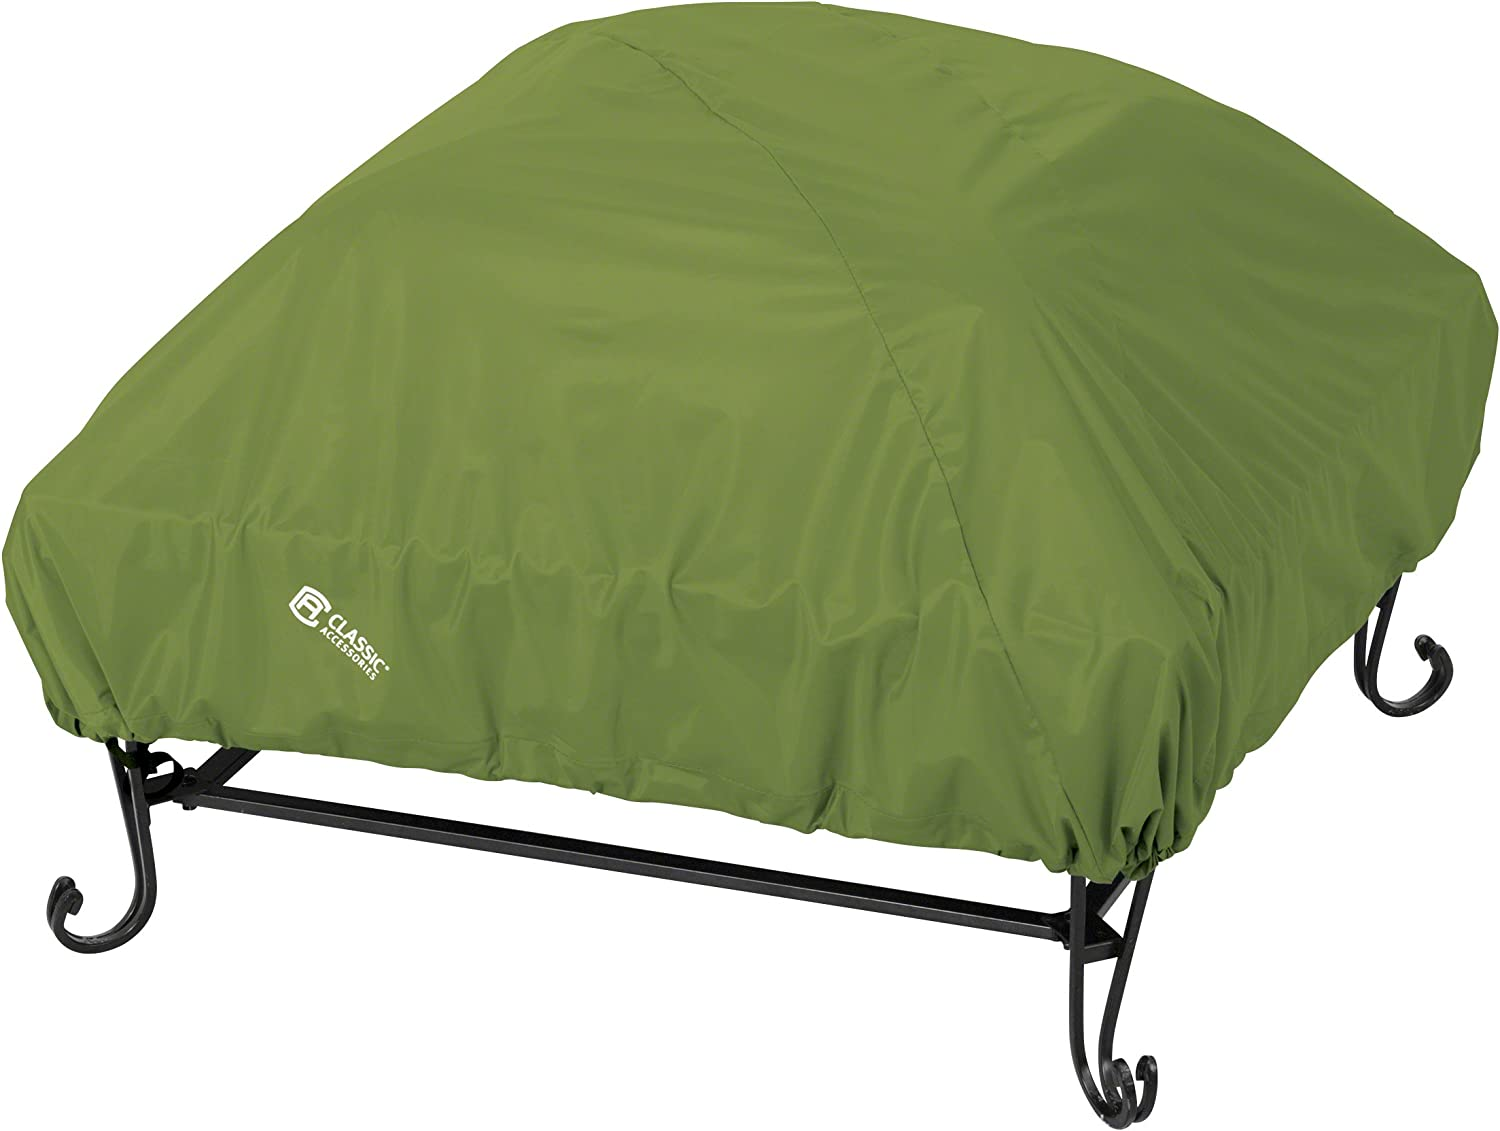 Classic Accessories 55-957-011901-EC Sodo Plus Fire Pit Cover